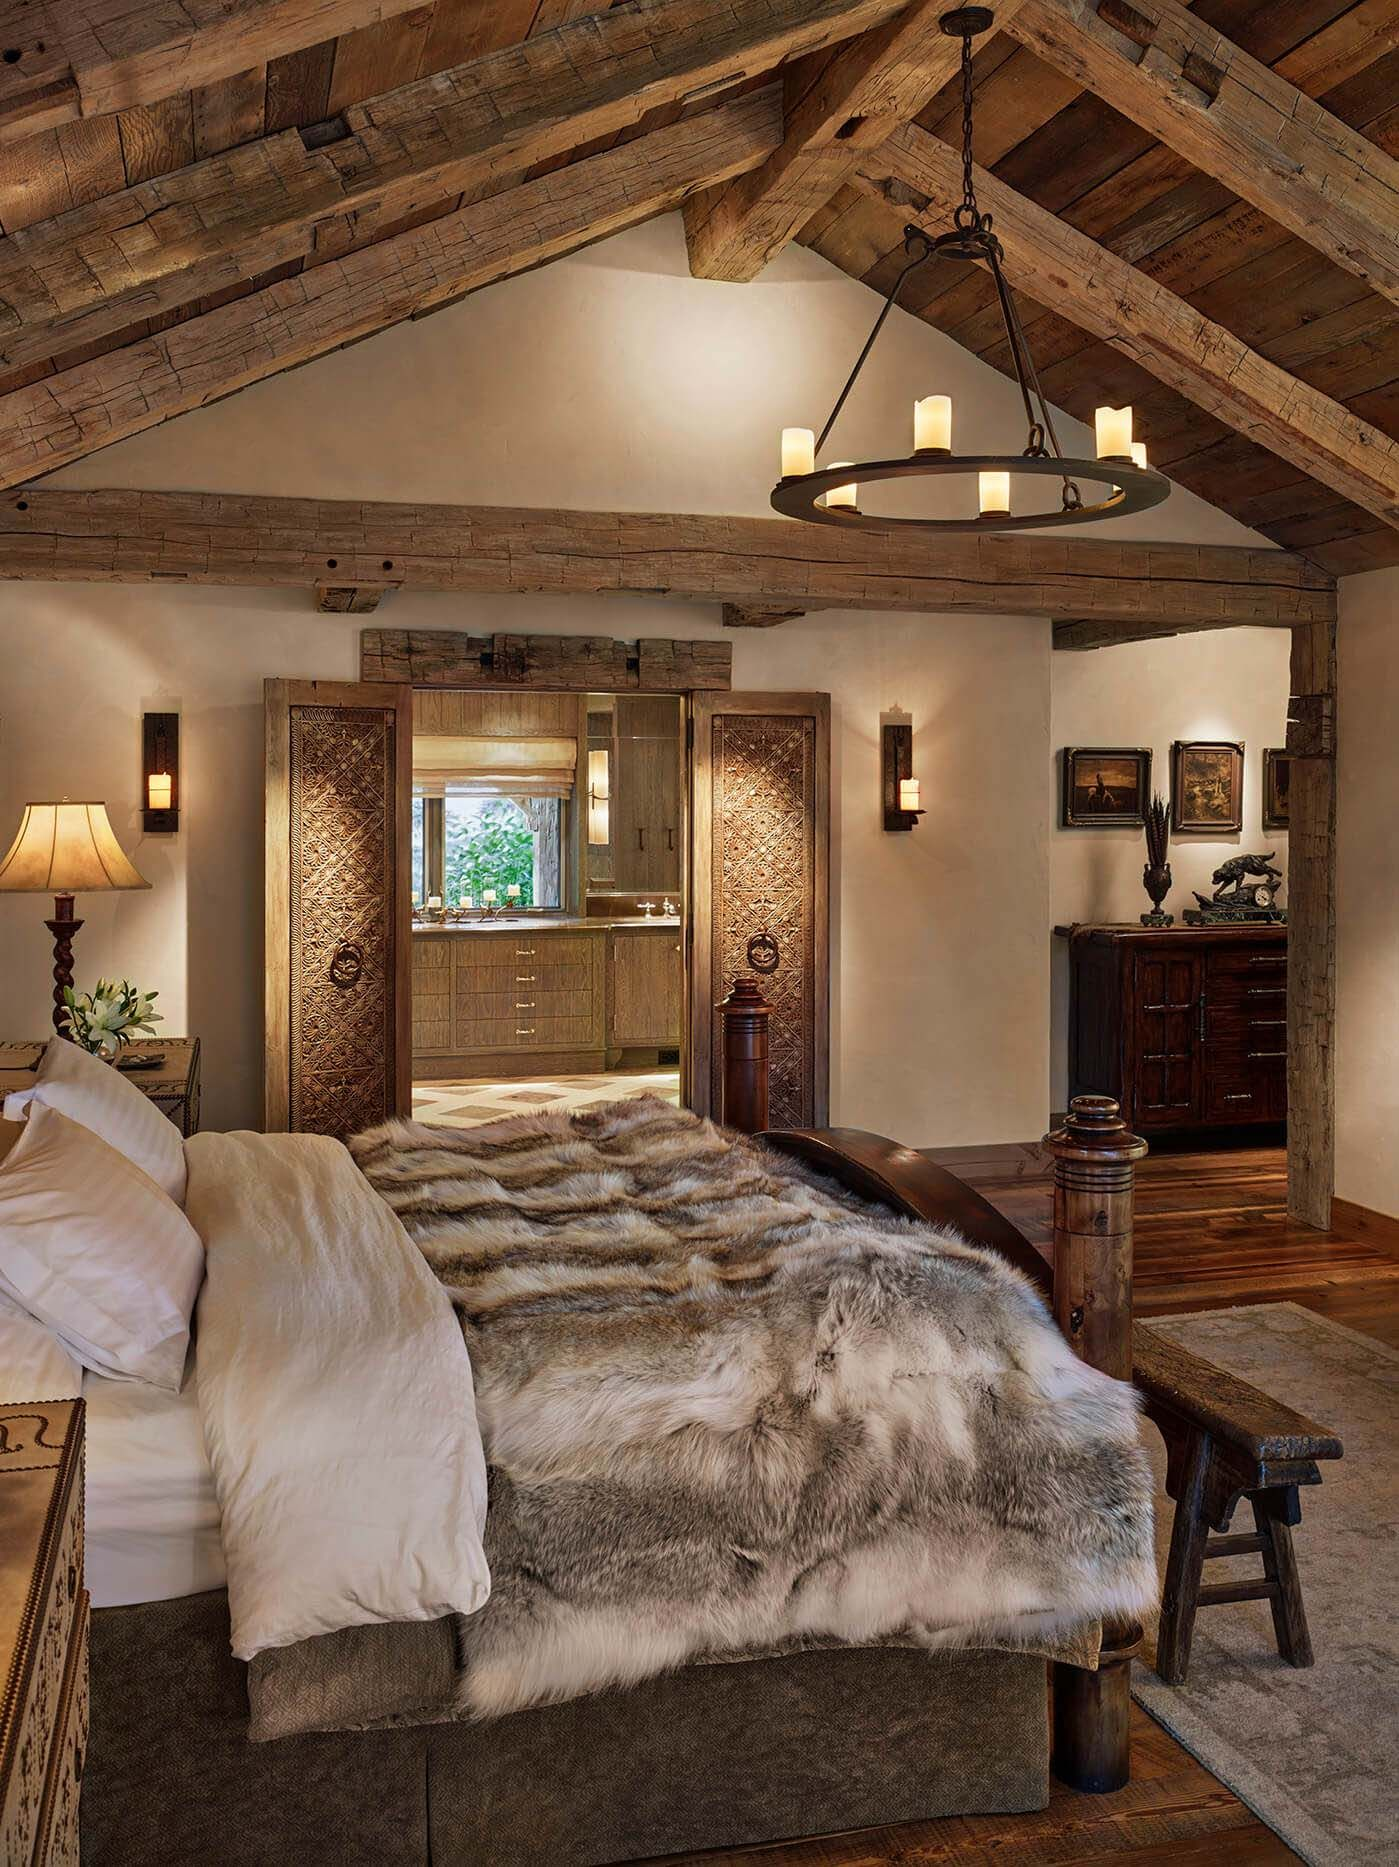 Farmhouse Addition Home Design Ideas Pictures Remodel And Decor: Breathtaking Rustic Ranch House Tucked Into The Beartooth Mountains